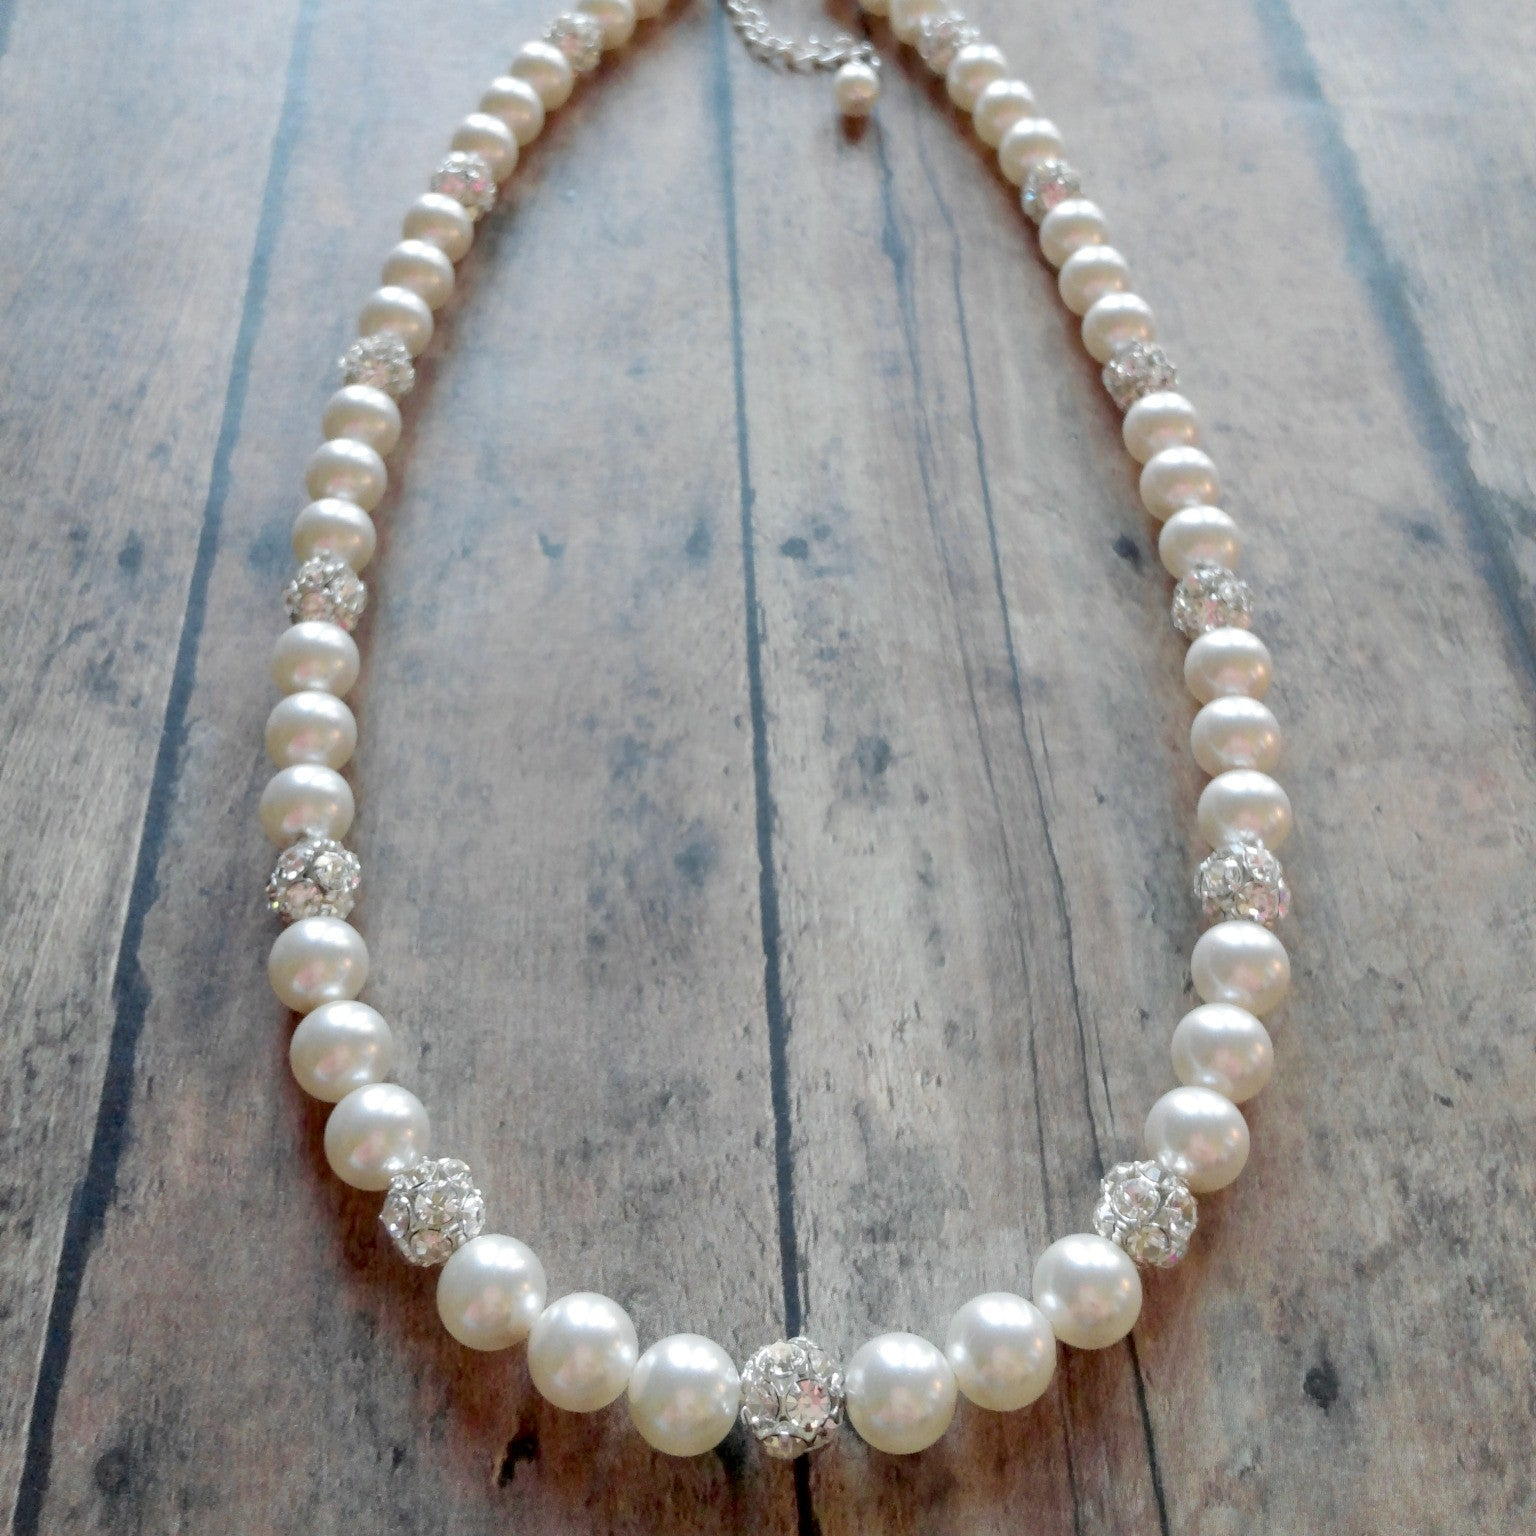 Single Strand Pearl and Rhinestone Necklace For Weddings